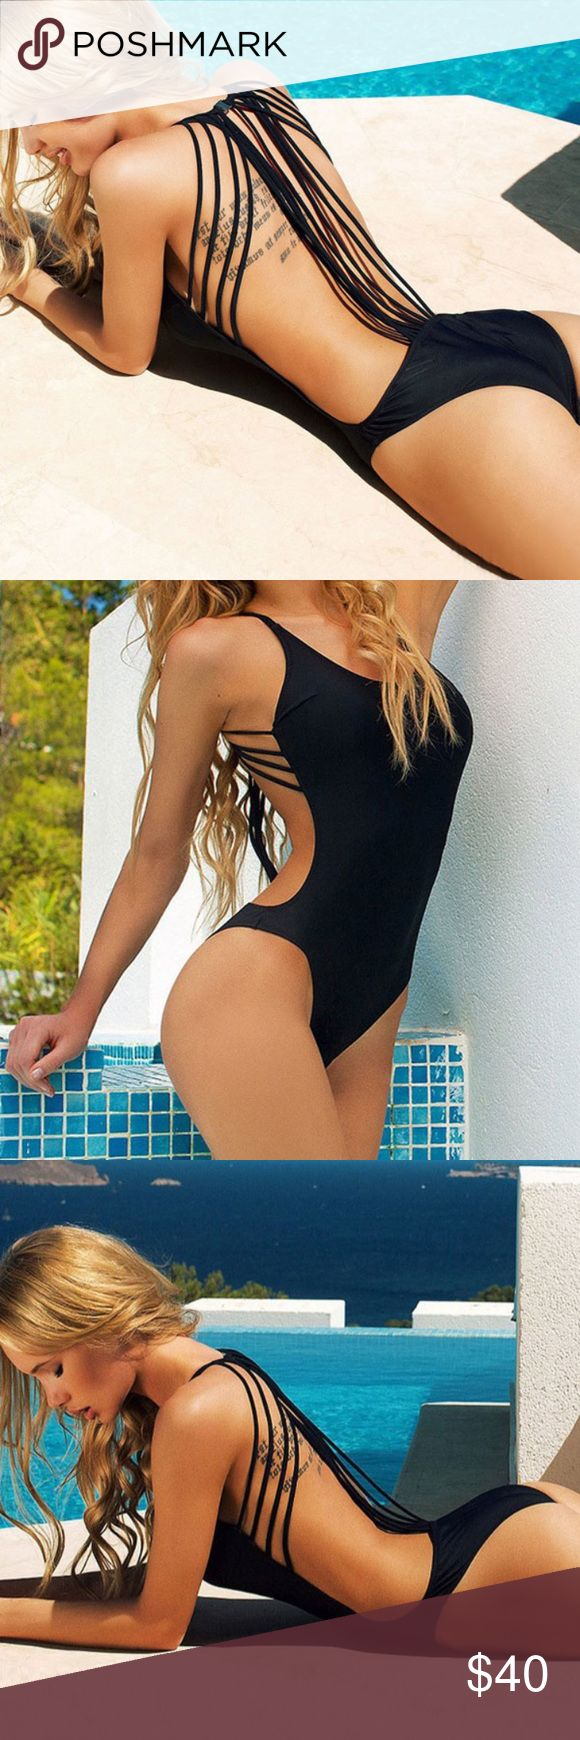 NEW LISTING Black monokini Gorgeous sexy black scrappy monokini. Not listed brand PINK Victoria's Secret Swim One Pieces